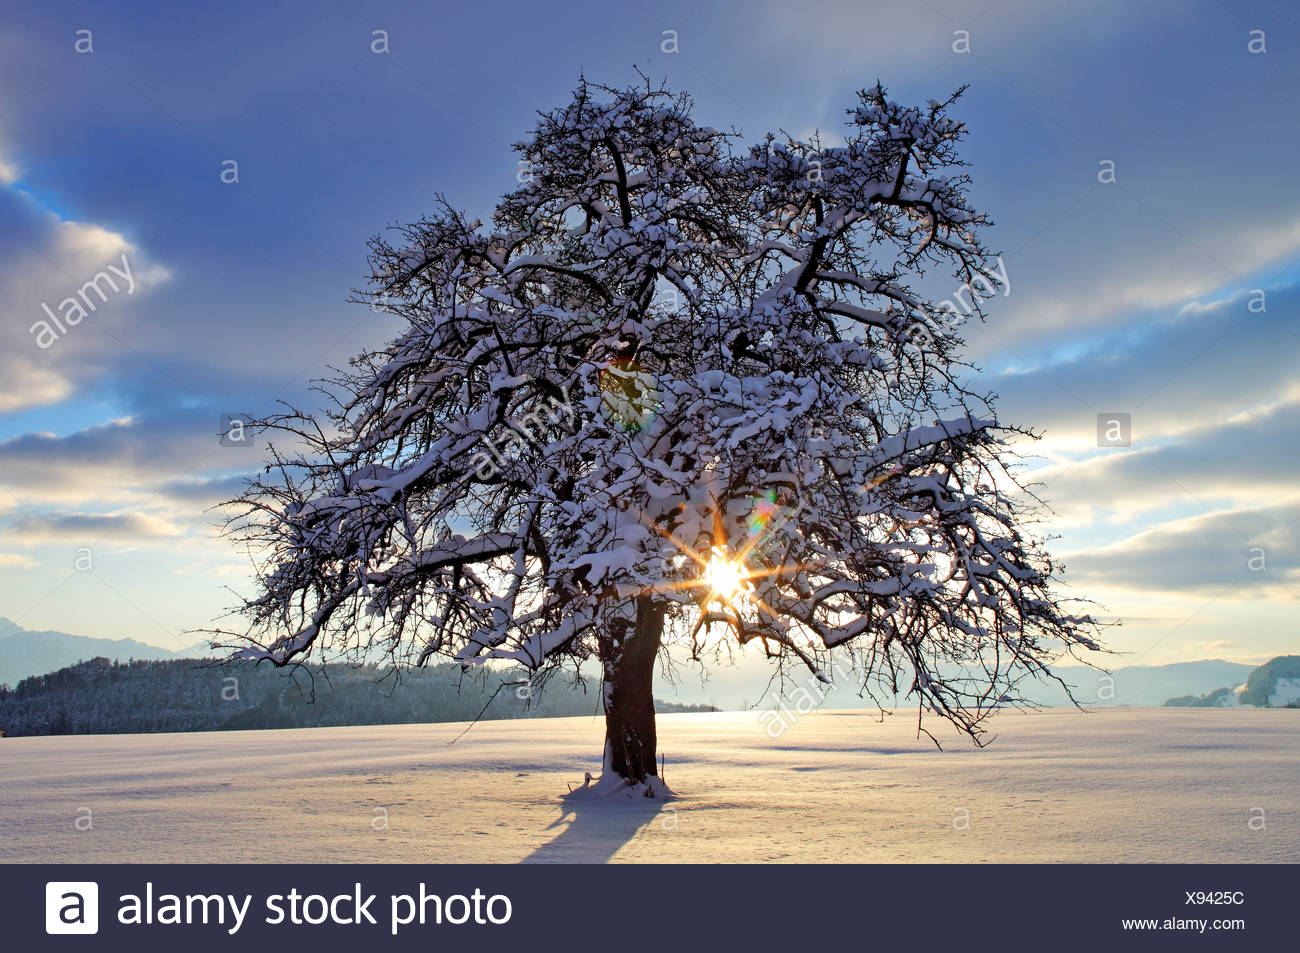 wintry apple tree stock photos wintry apple tree stock